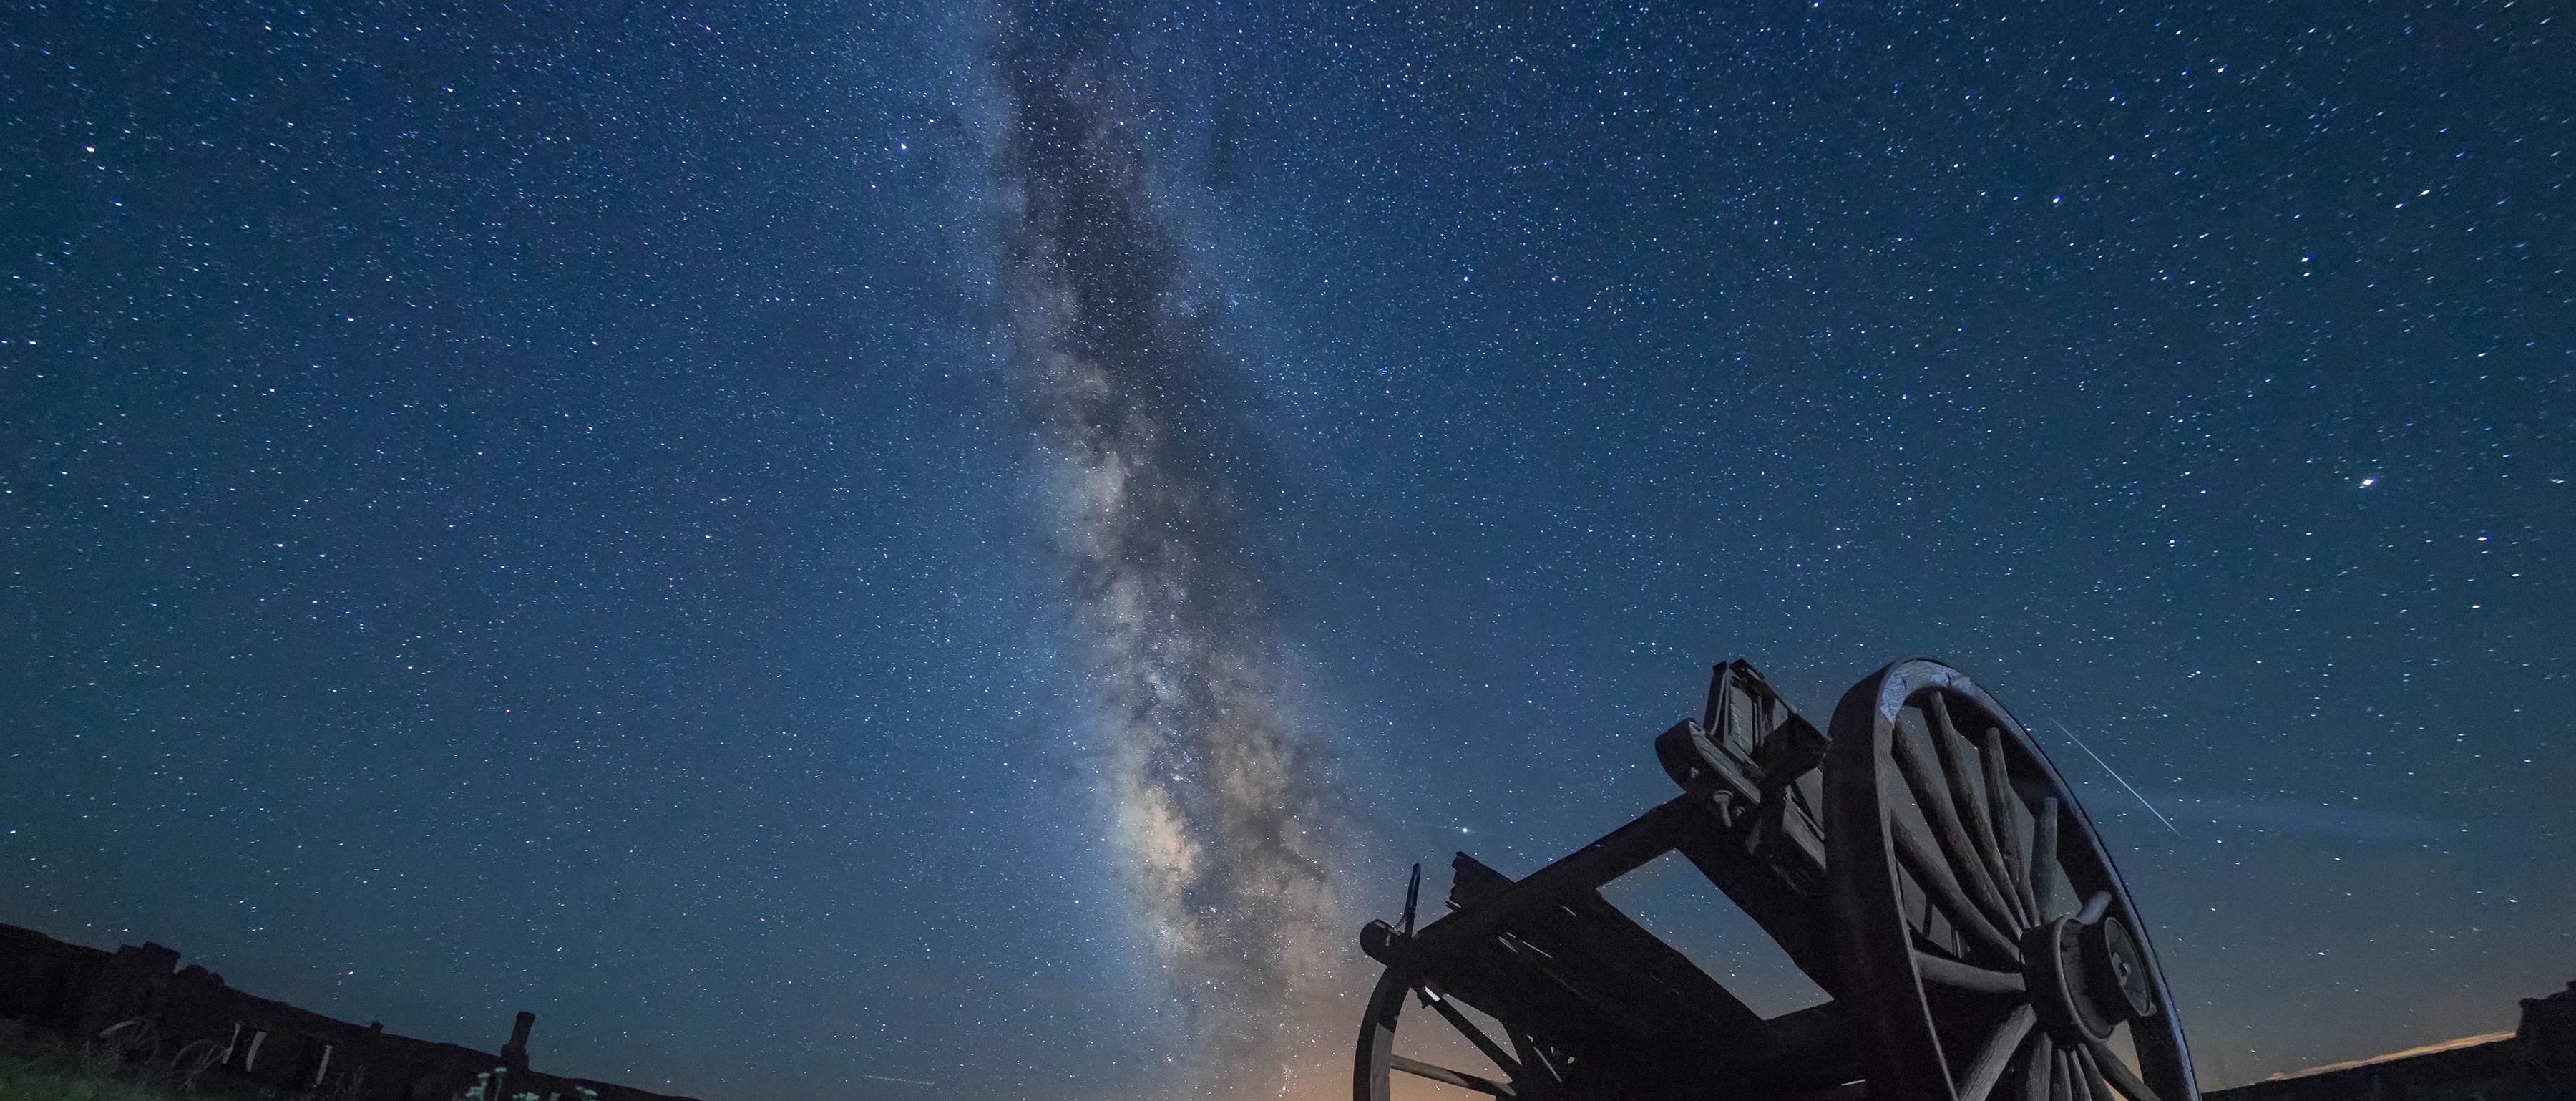 Fort Union National Monument Certified as an International Dark Sky Park Image